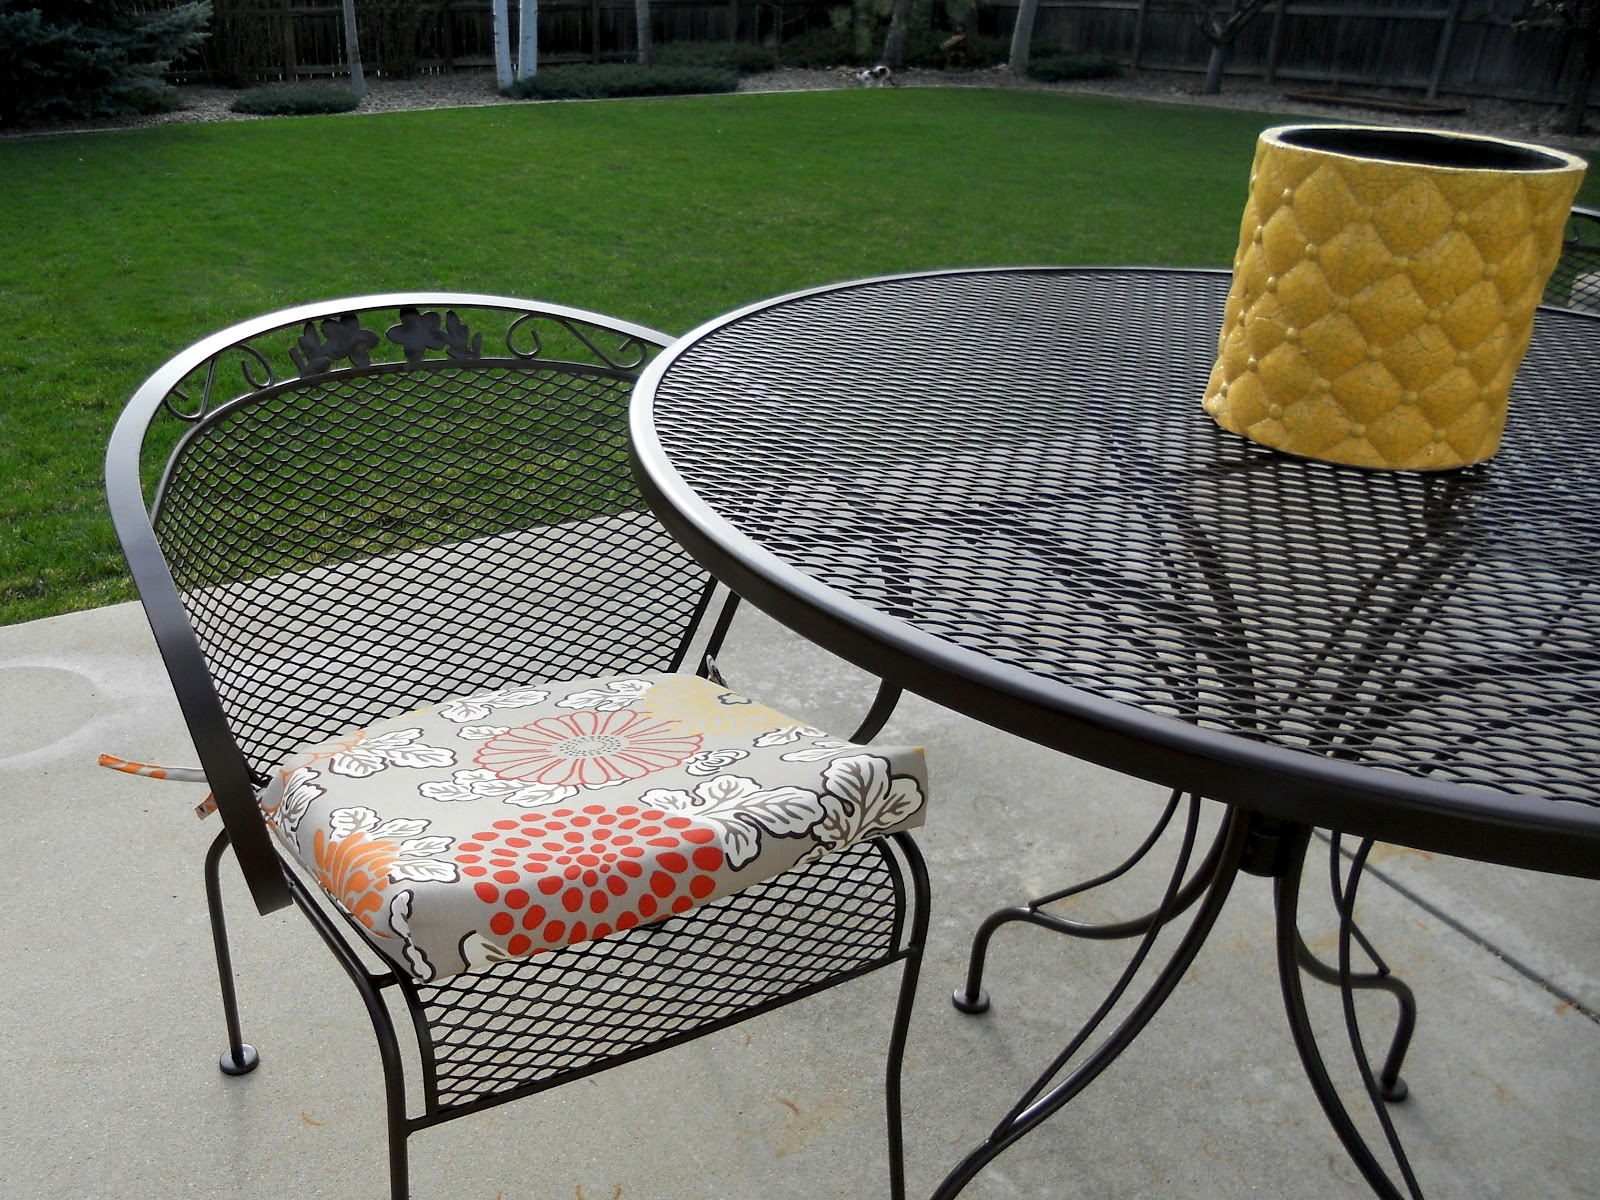 Refurbishing Wrought Iron Furniture